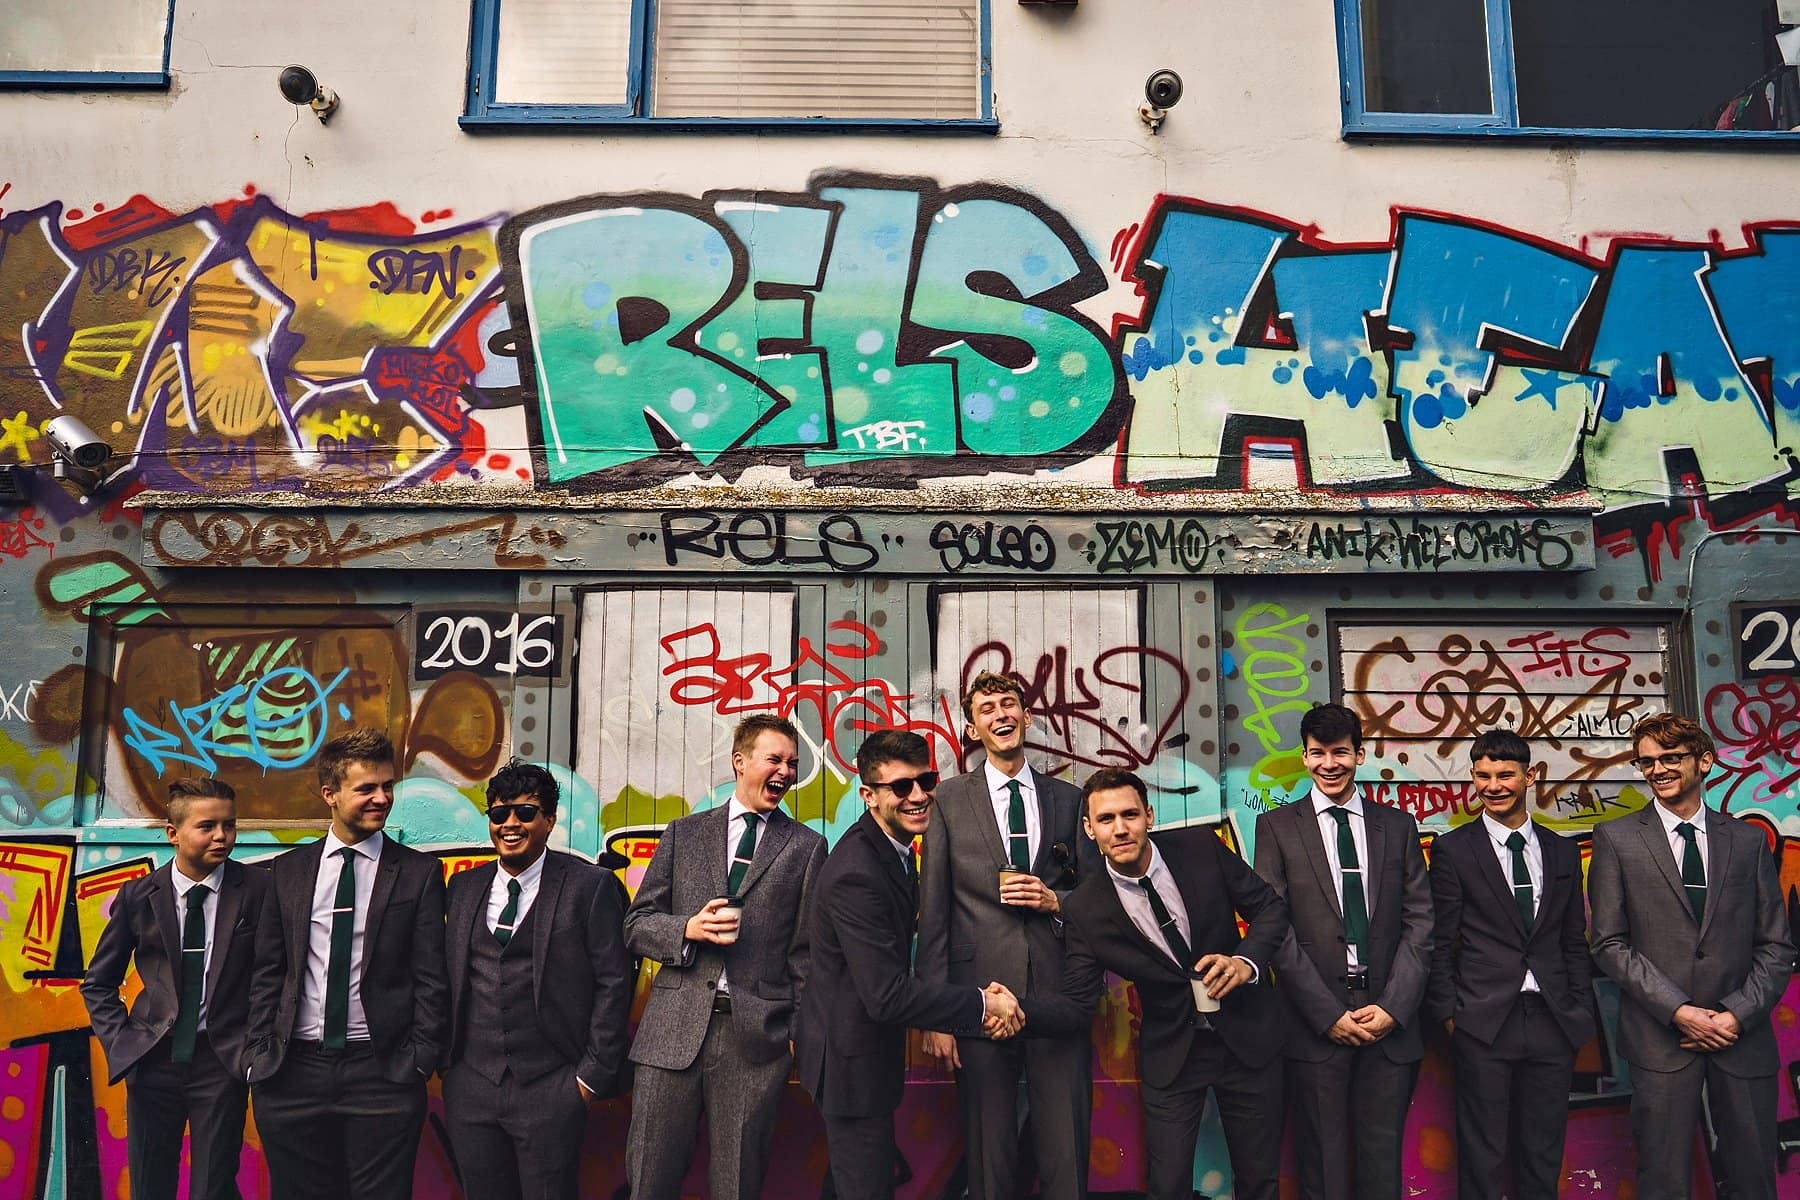 Groom Best Men Groomsmen Ushers Graffiti Street Brighton Wedding Photographer,